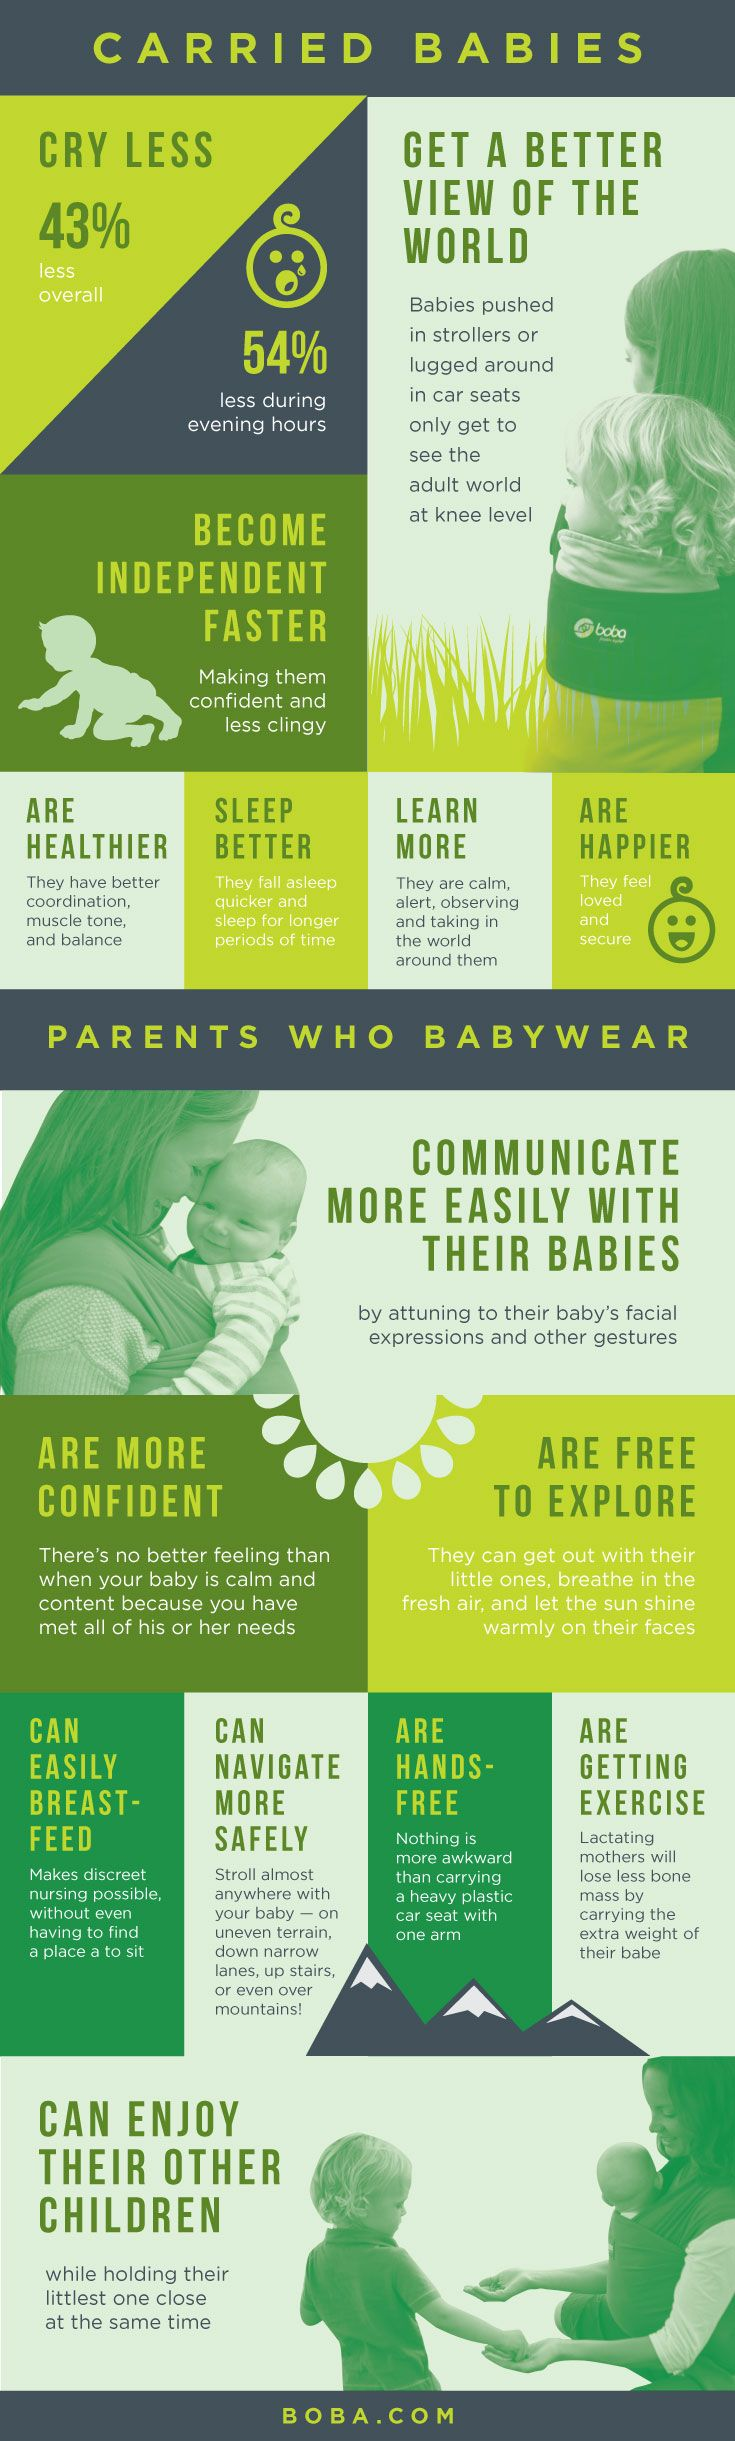 A healthy baby carrier can be your best partner in parenting wee ones! Check out these important benefits of babywearing from newborn through toddlerhood.